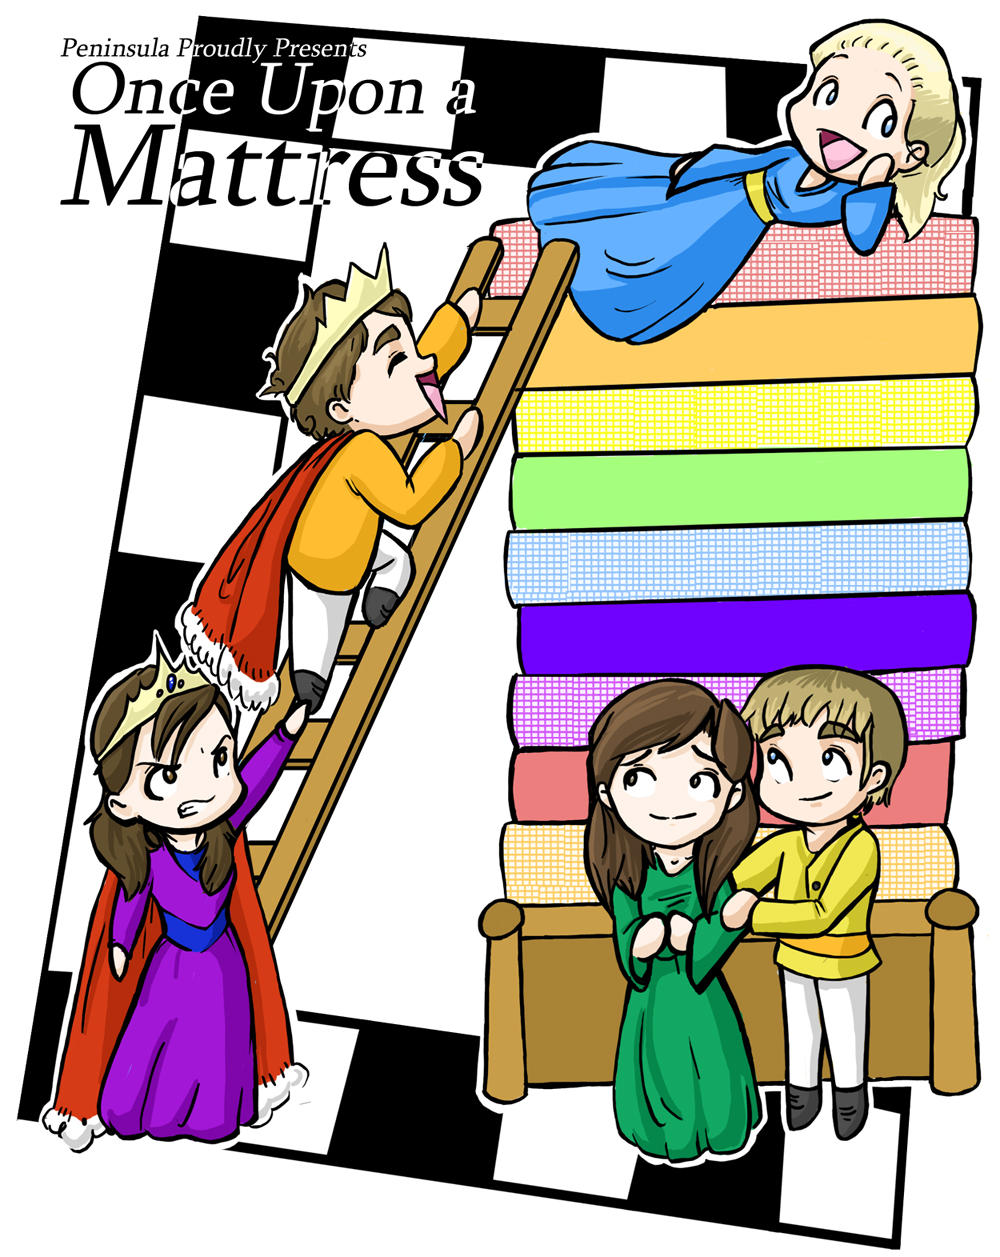 essay once upon a mattress using aristotles six elements